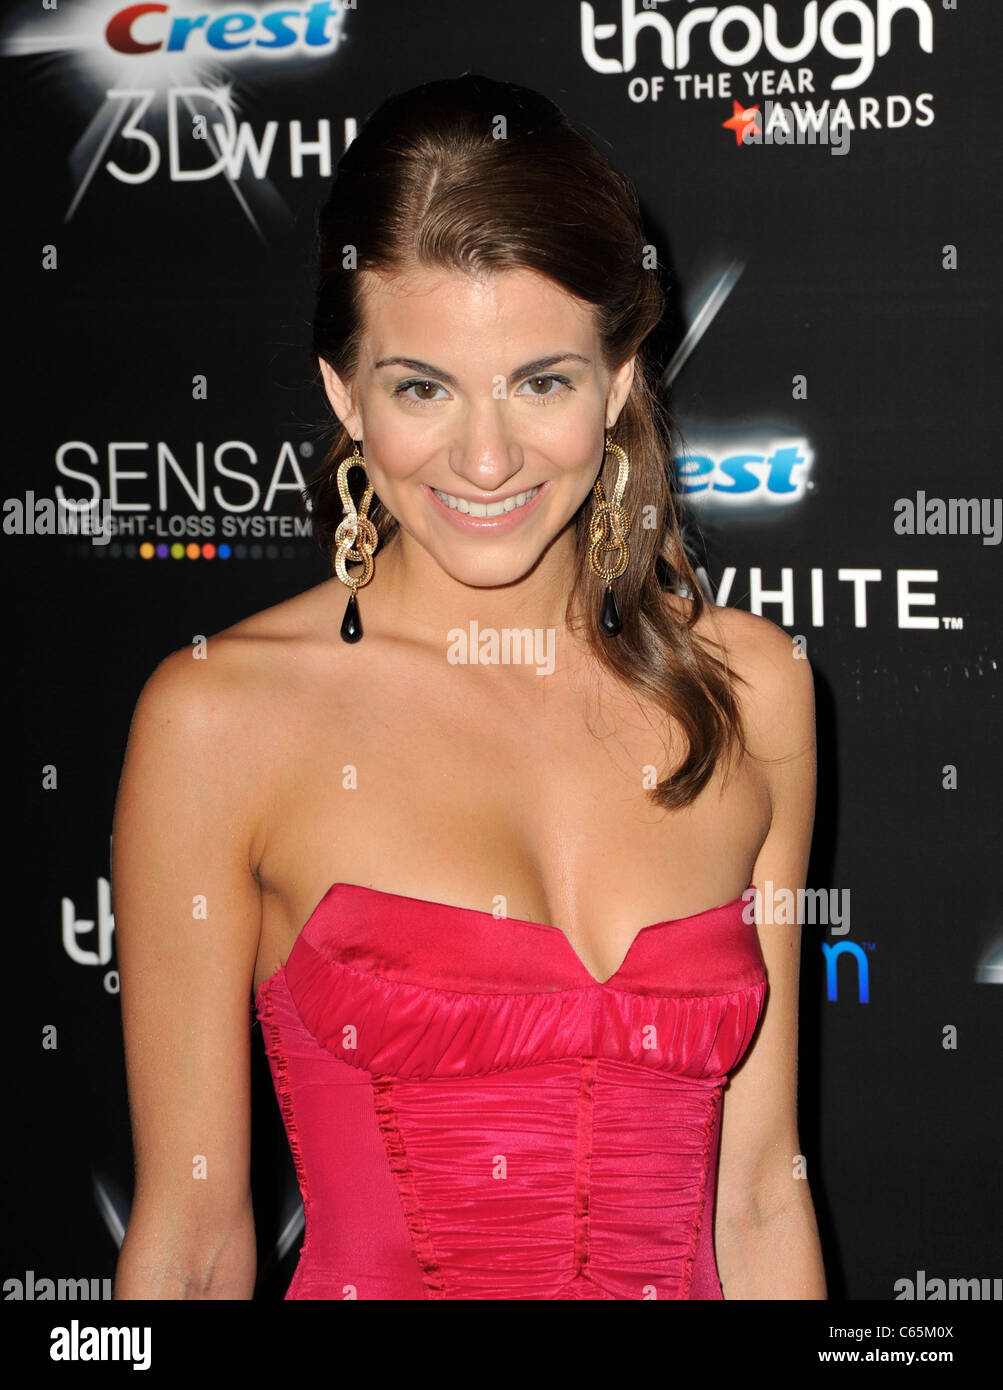 Rachel McCord at arrivals for 2010 Breakthrough of the Year Awards, Pacific Design Center, Los Angeles, CA August Stock Photo